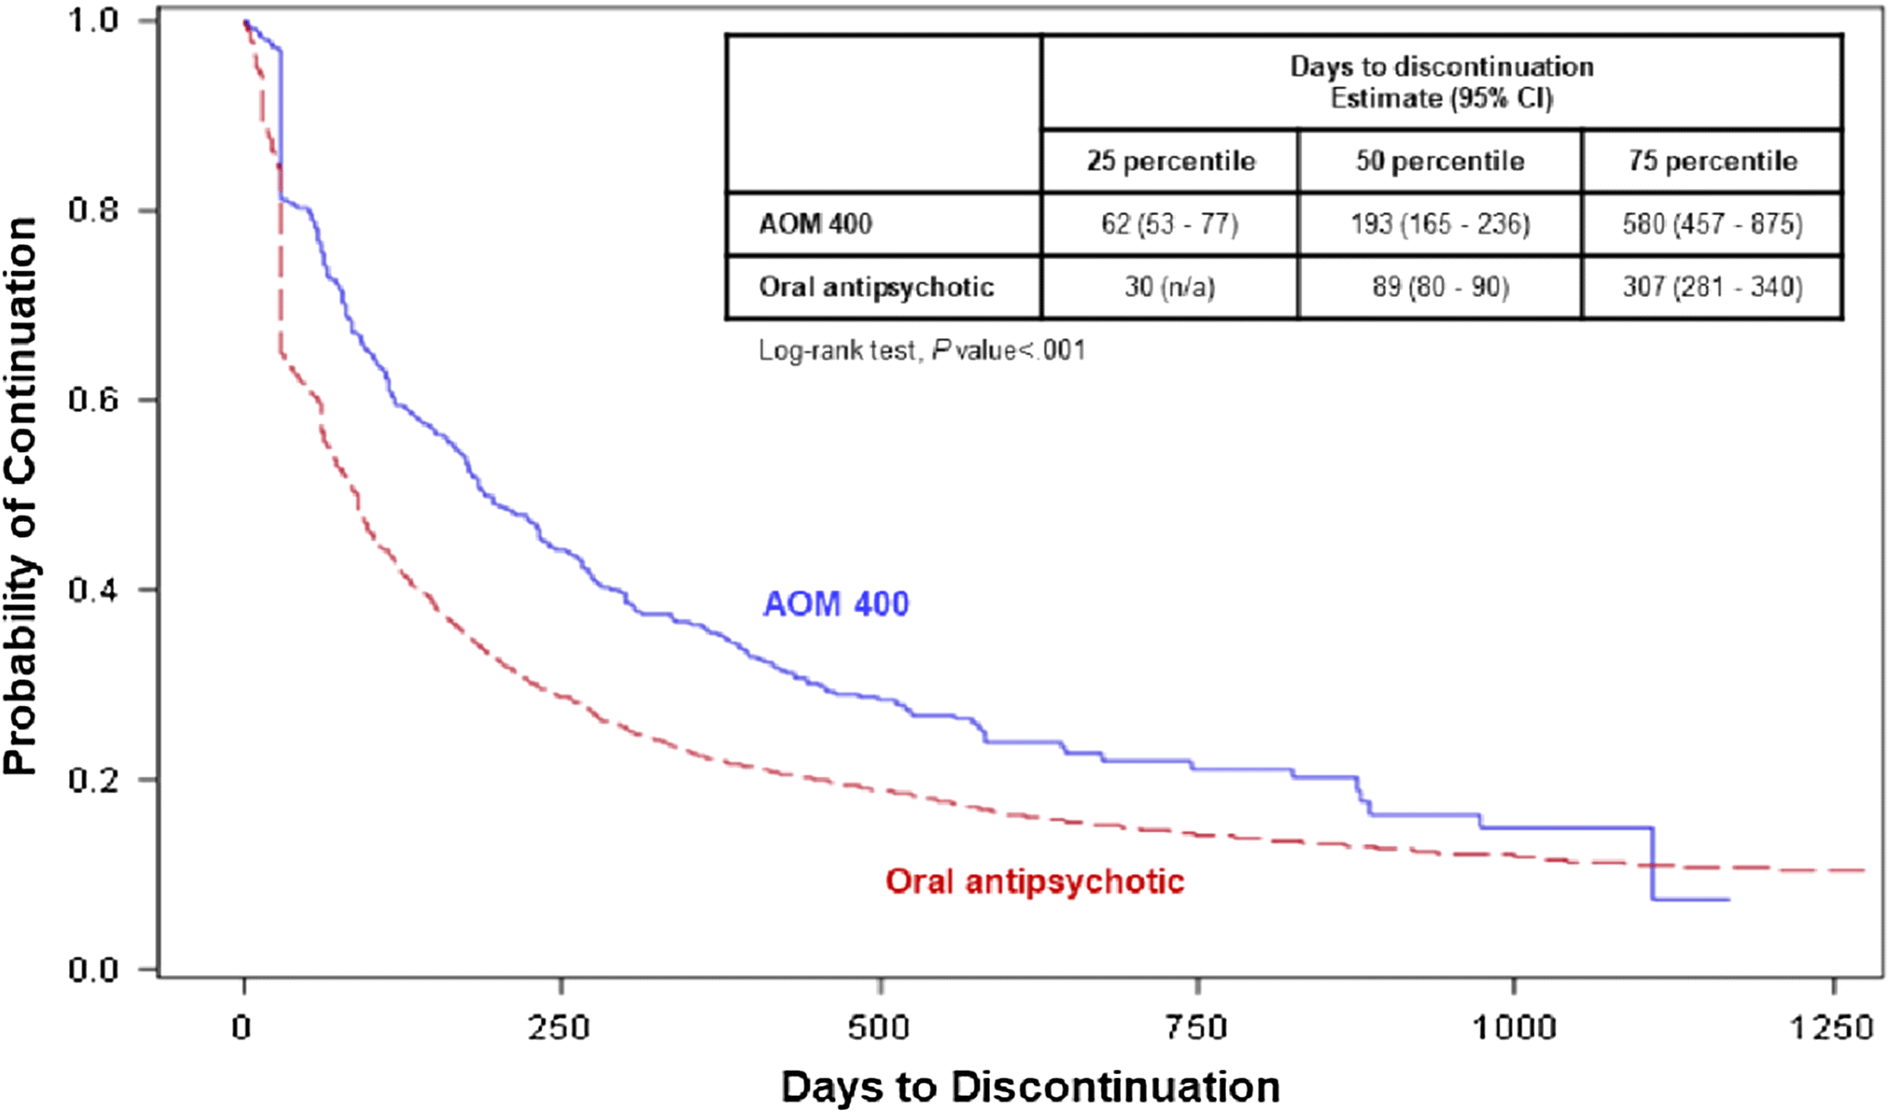 Medication Adherence and Discontinuation of Aripiprazole